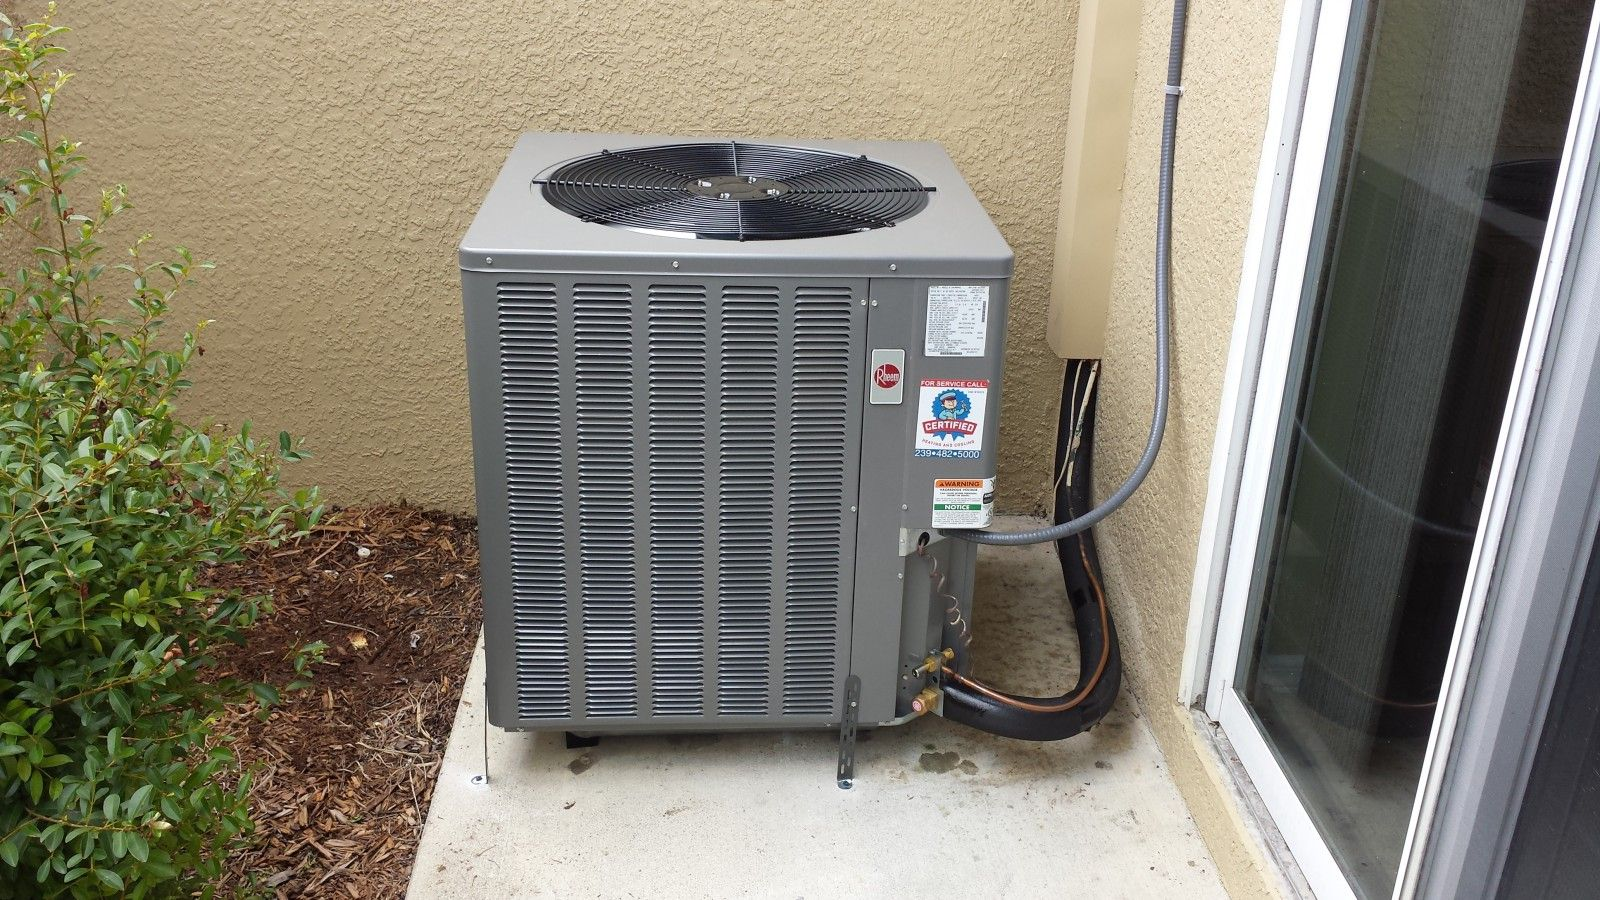 Another satisfied client with a new air conditioner